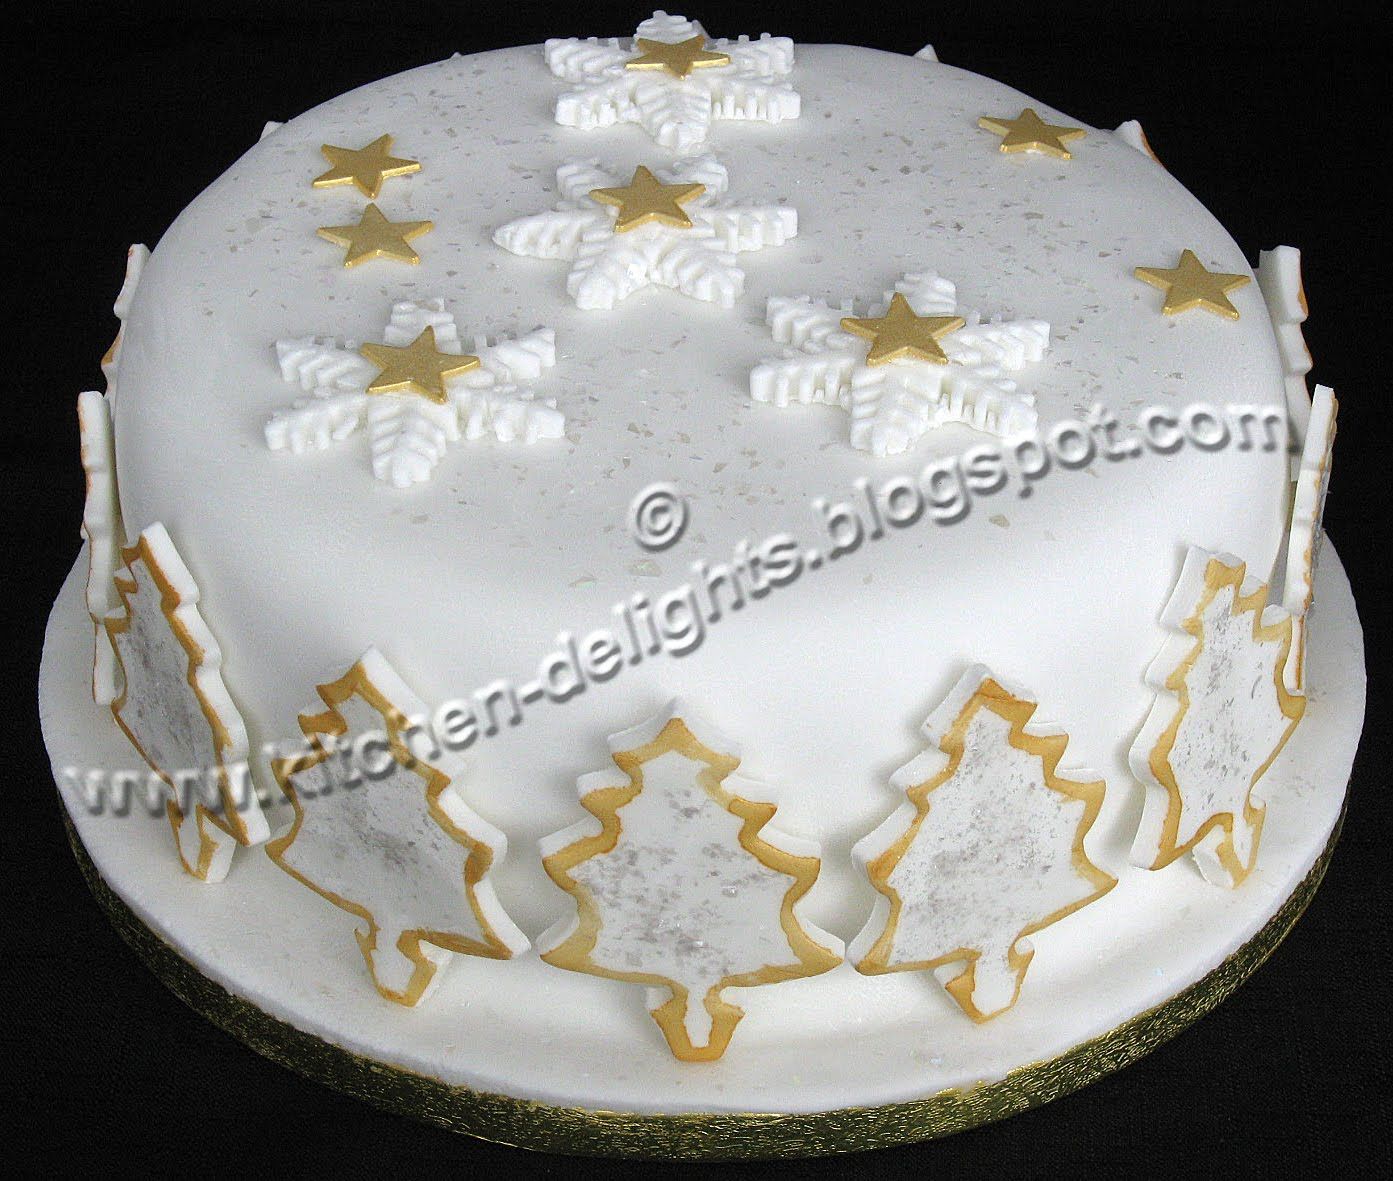 Row Home Decorating Ideas Kitchen Delights Iced Snowflake Christmas Cake